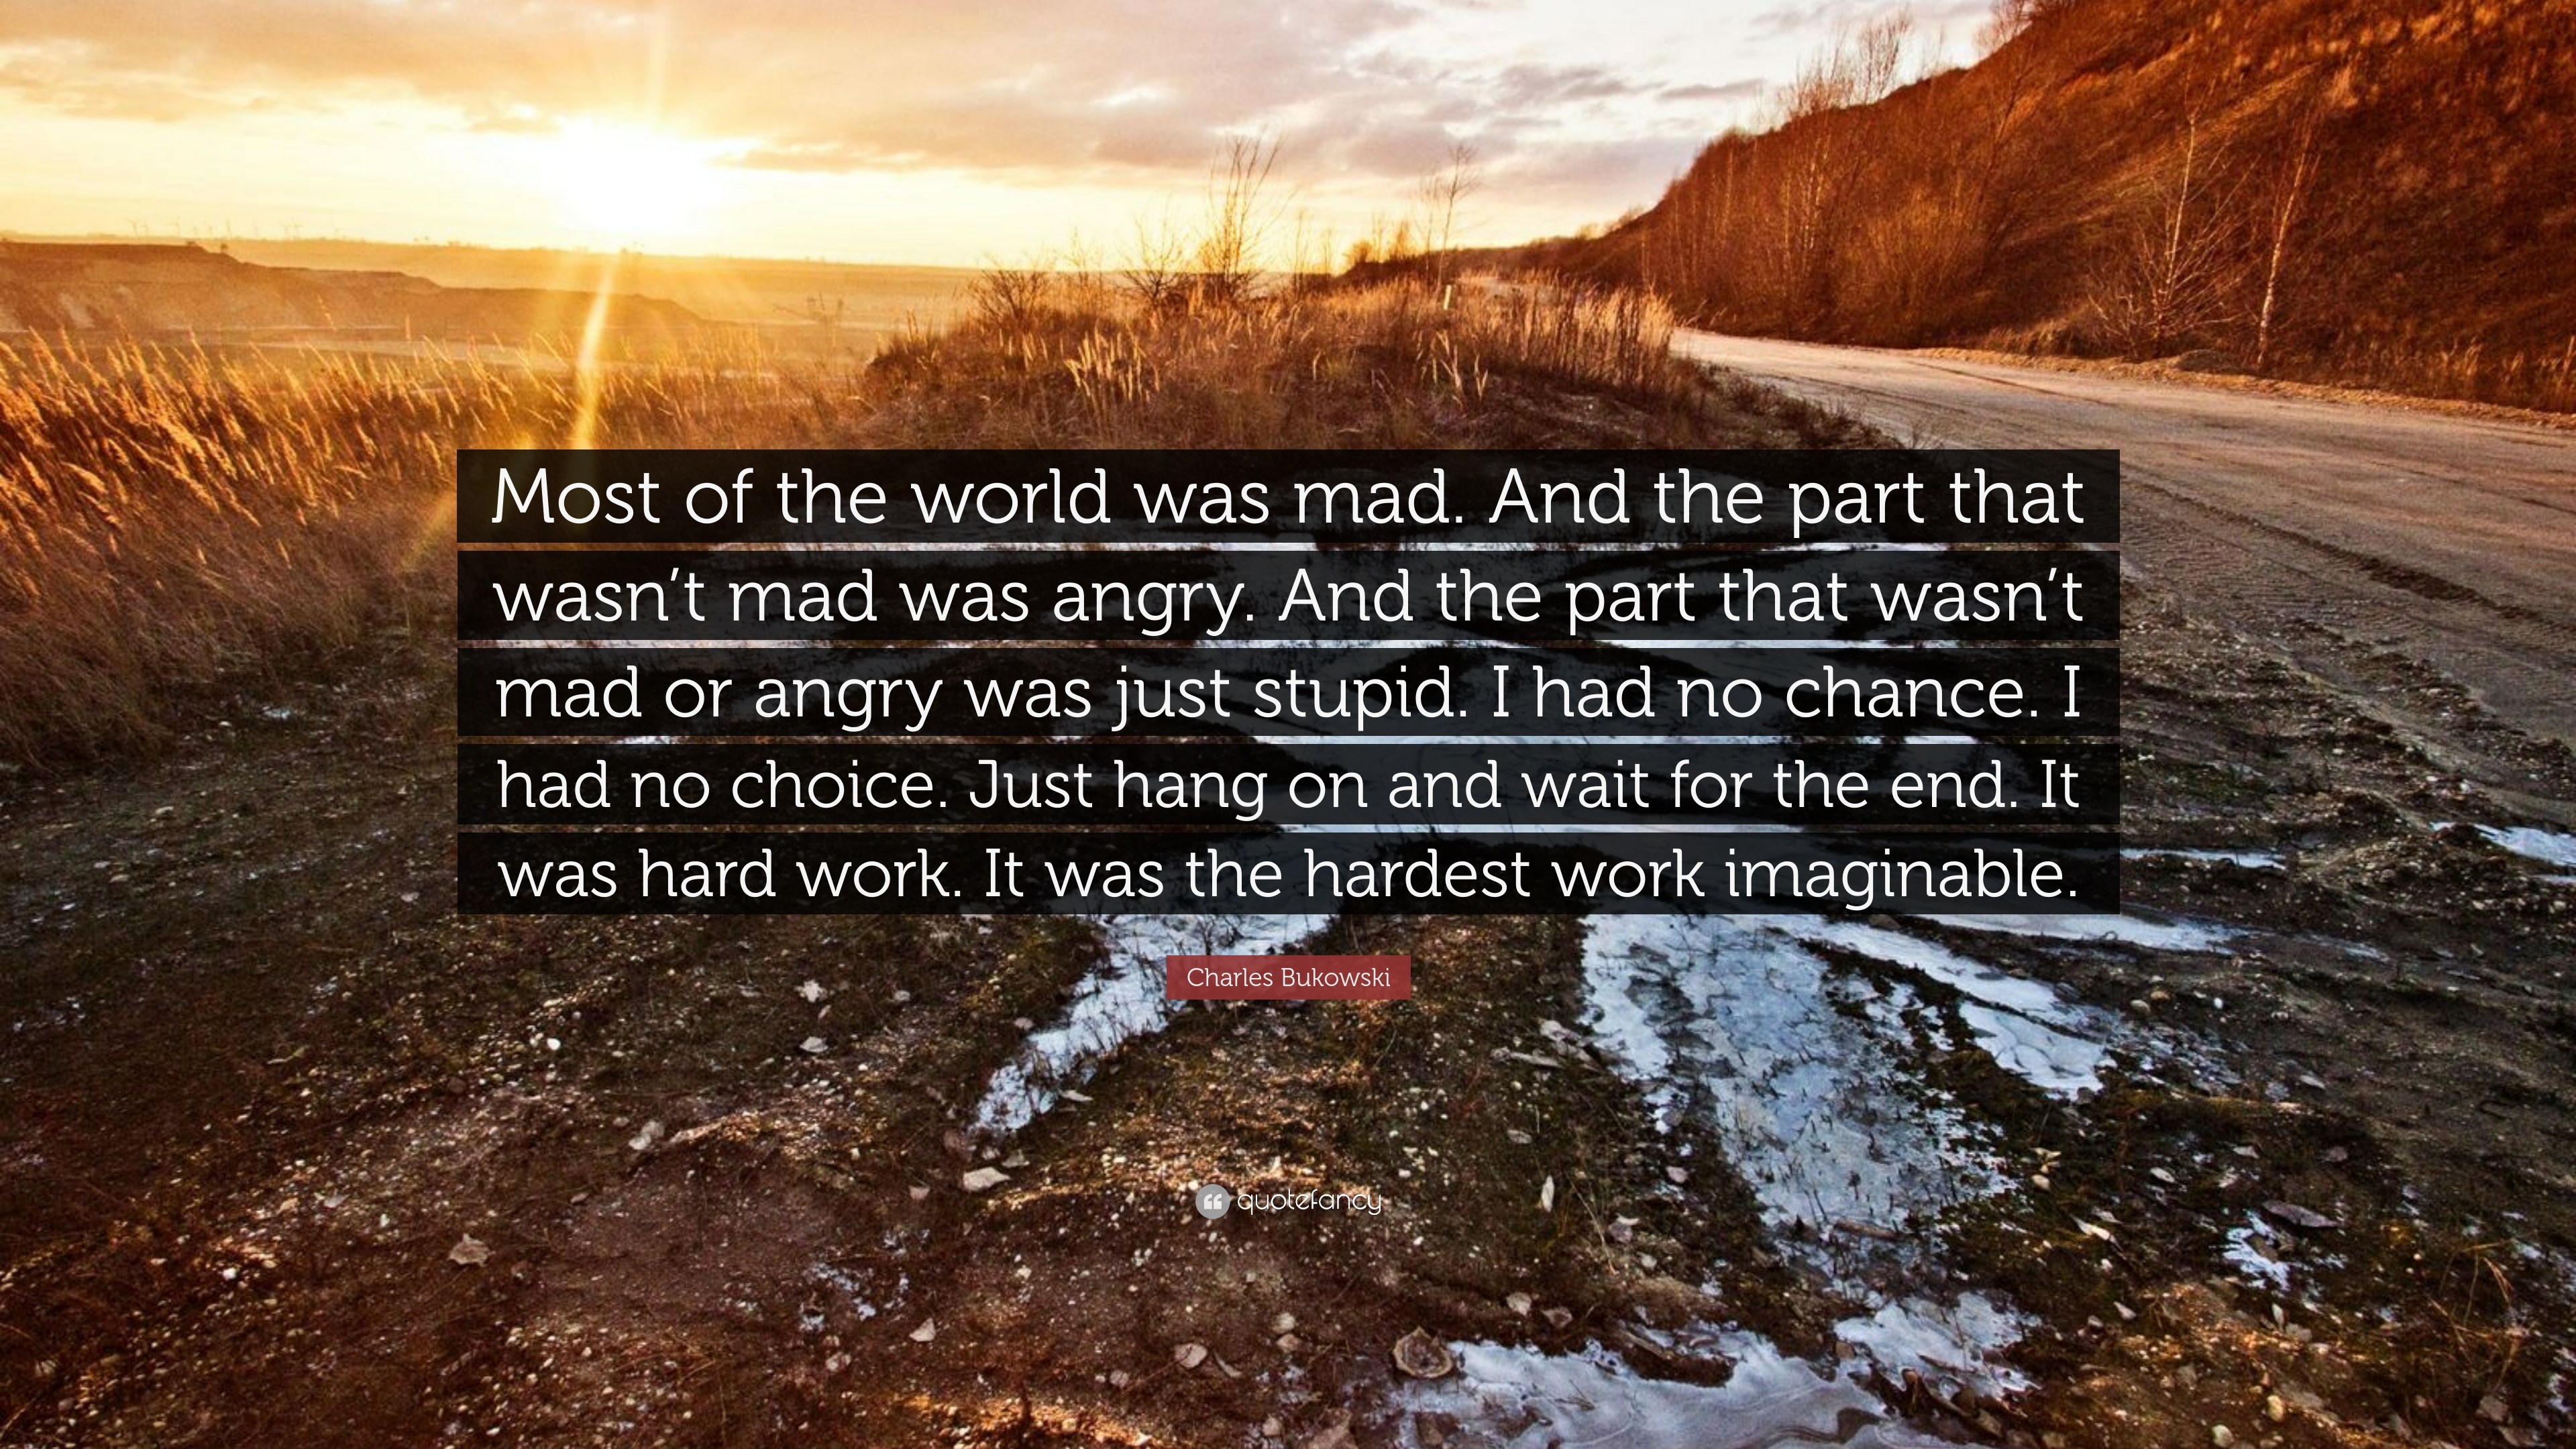 Elegant Charles Bukowski Quote: U201cMost Of The World Was Mad. And The Part That